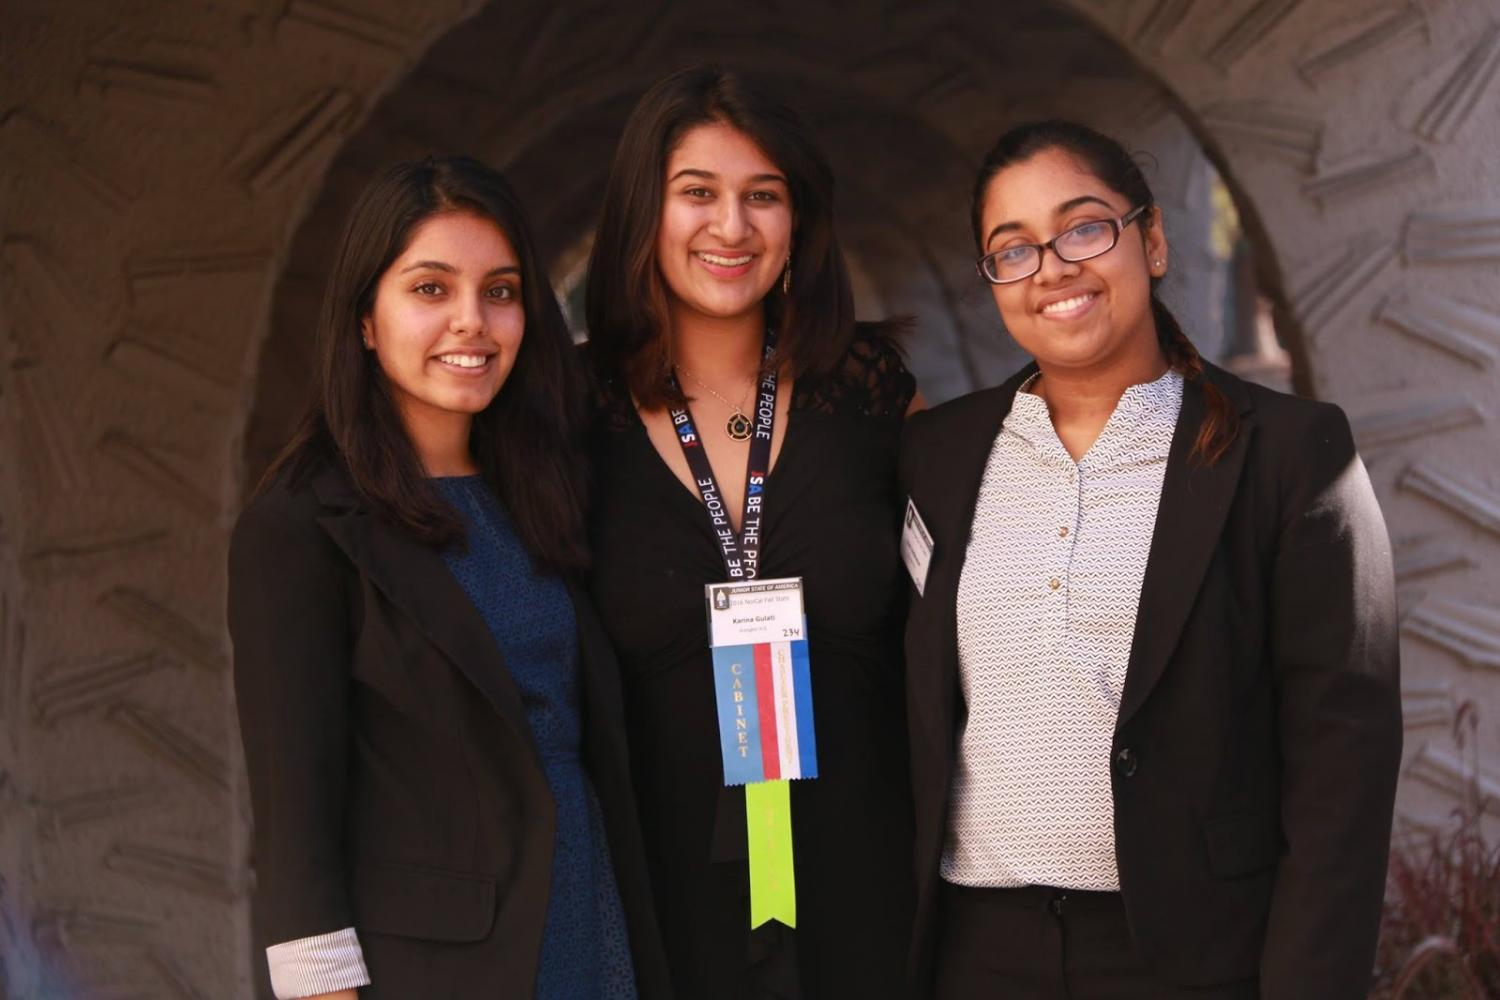 Secretary+and+Treasurer+Kirti+Nangia%2C+President+Karina+Gulati%2C+and+JSA+member+Vani+Anilkumar%2C+along+with+other+JSA+competitors%2C+traveled+to+Santa+Clara+to+compete+in+a+multitude+of+events+and+debates+about+politics+in+the+Norcal+Fall+Convention